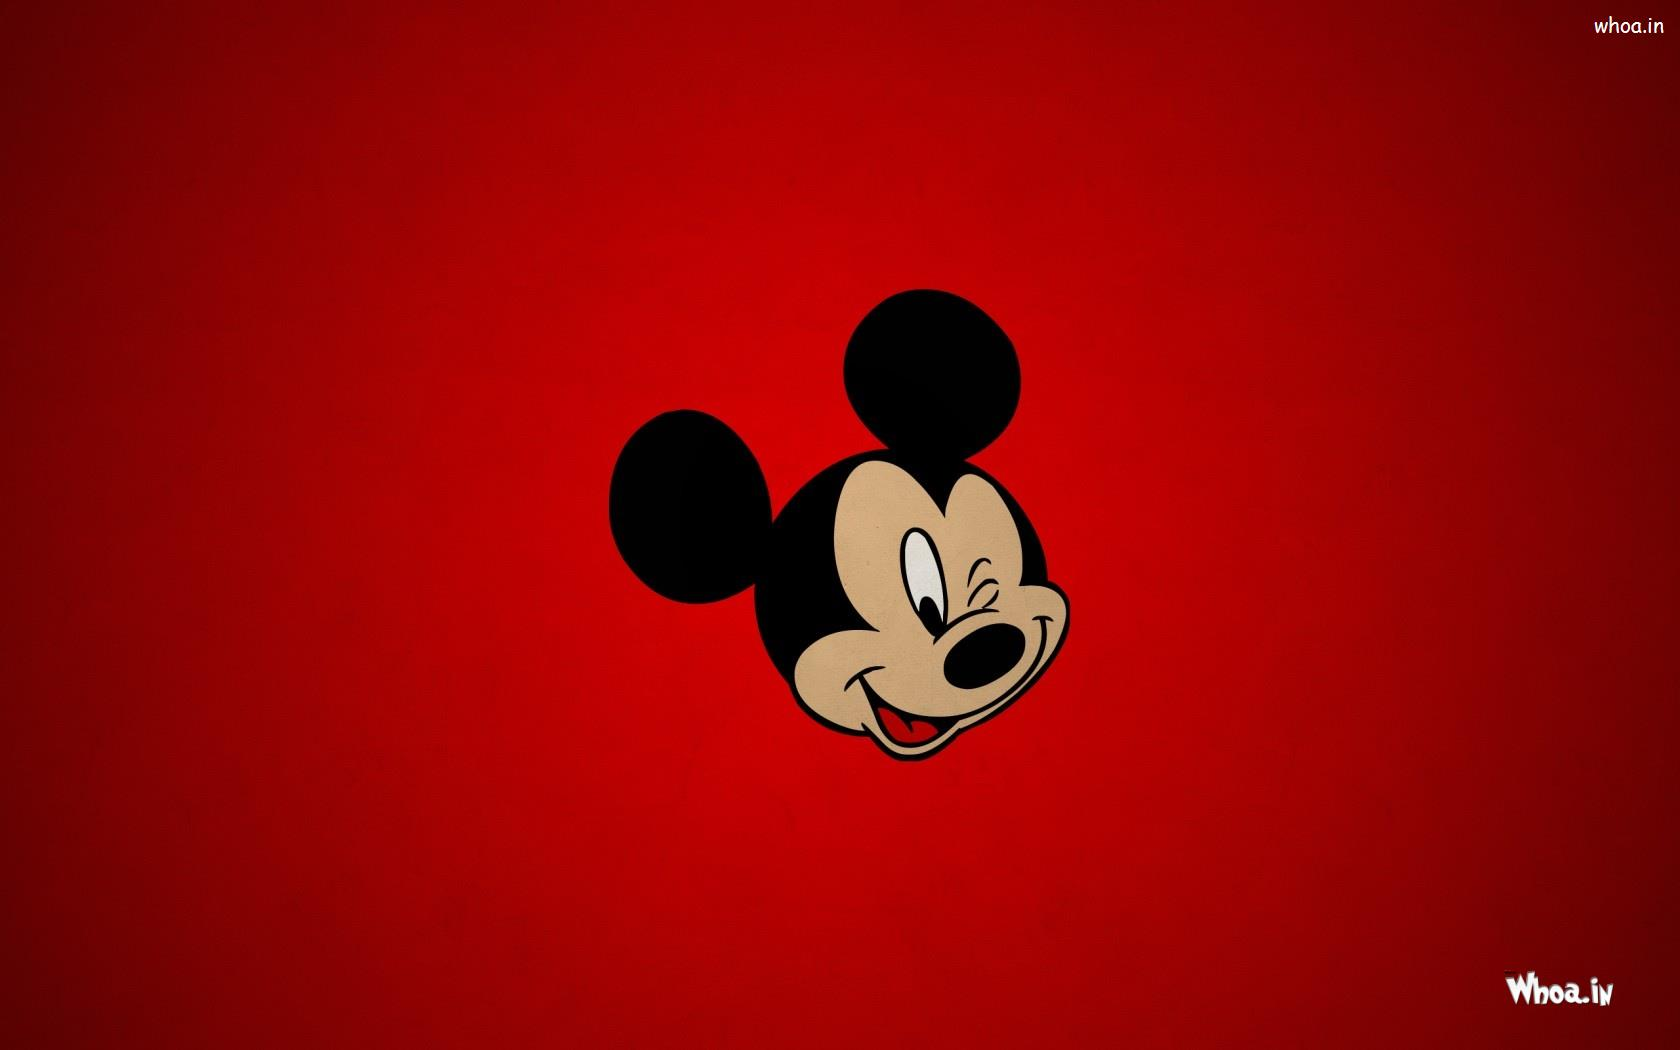 Mickey Mouse Face With Red Background Hd Cartoon Wallpaper